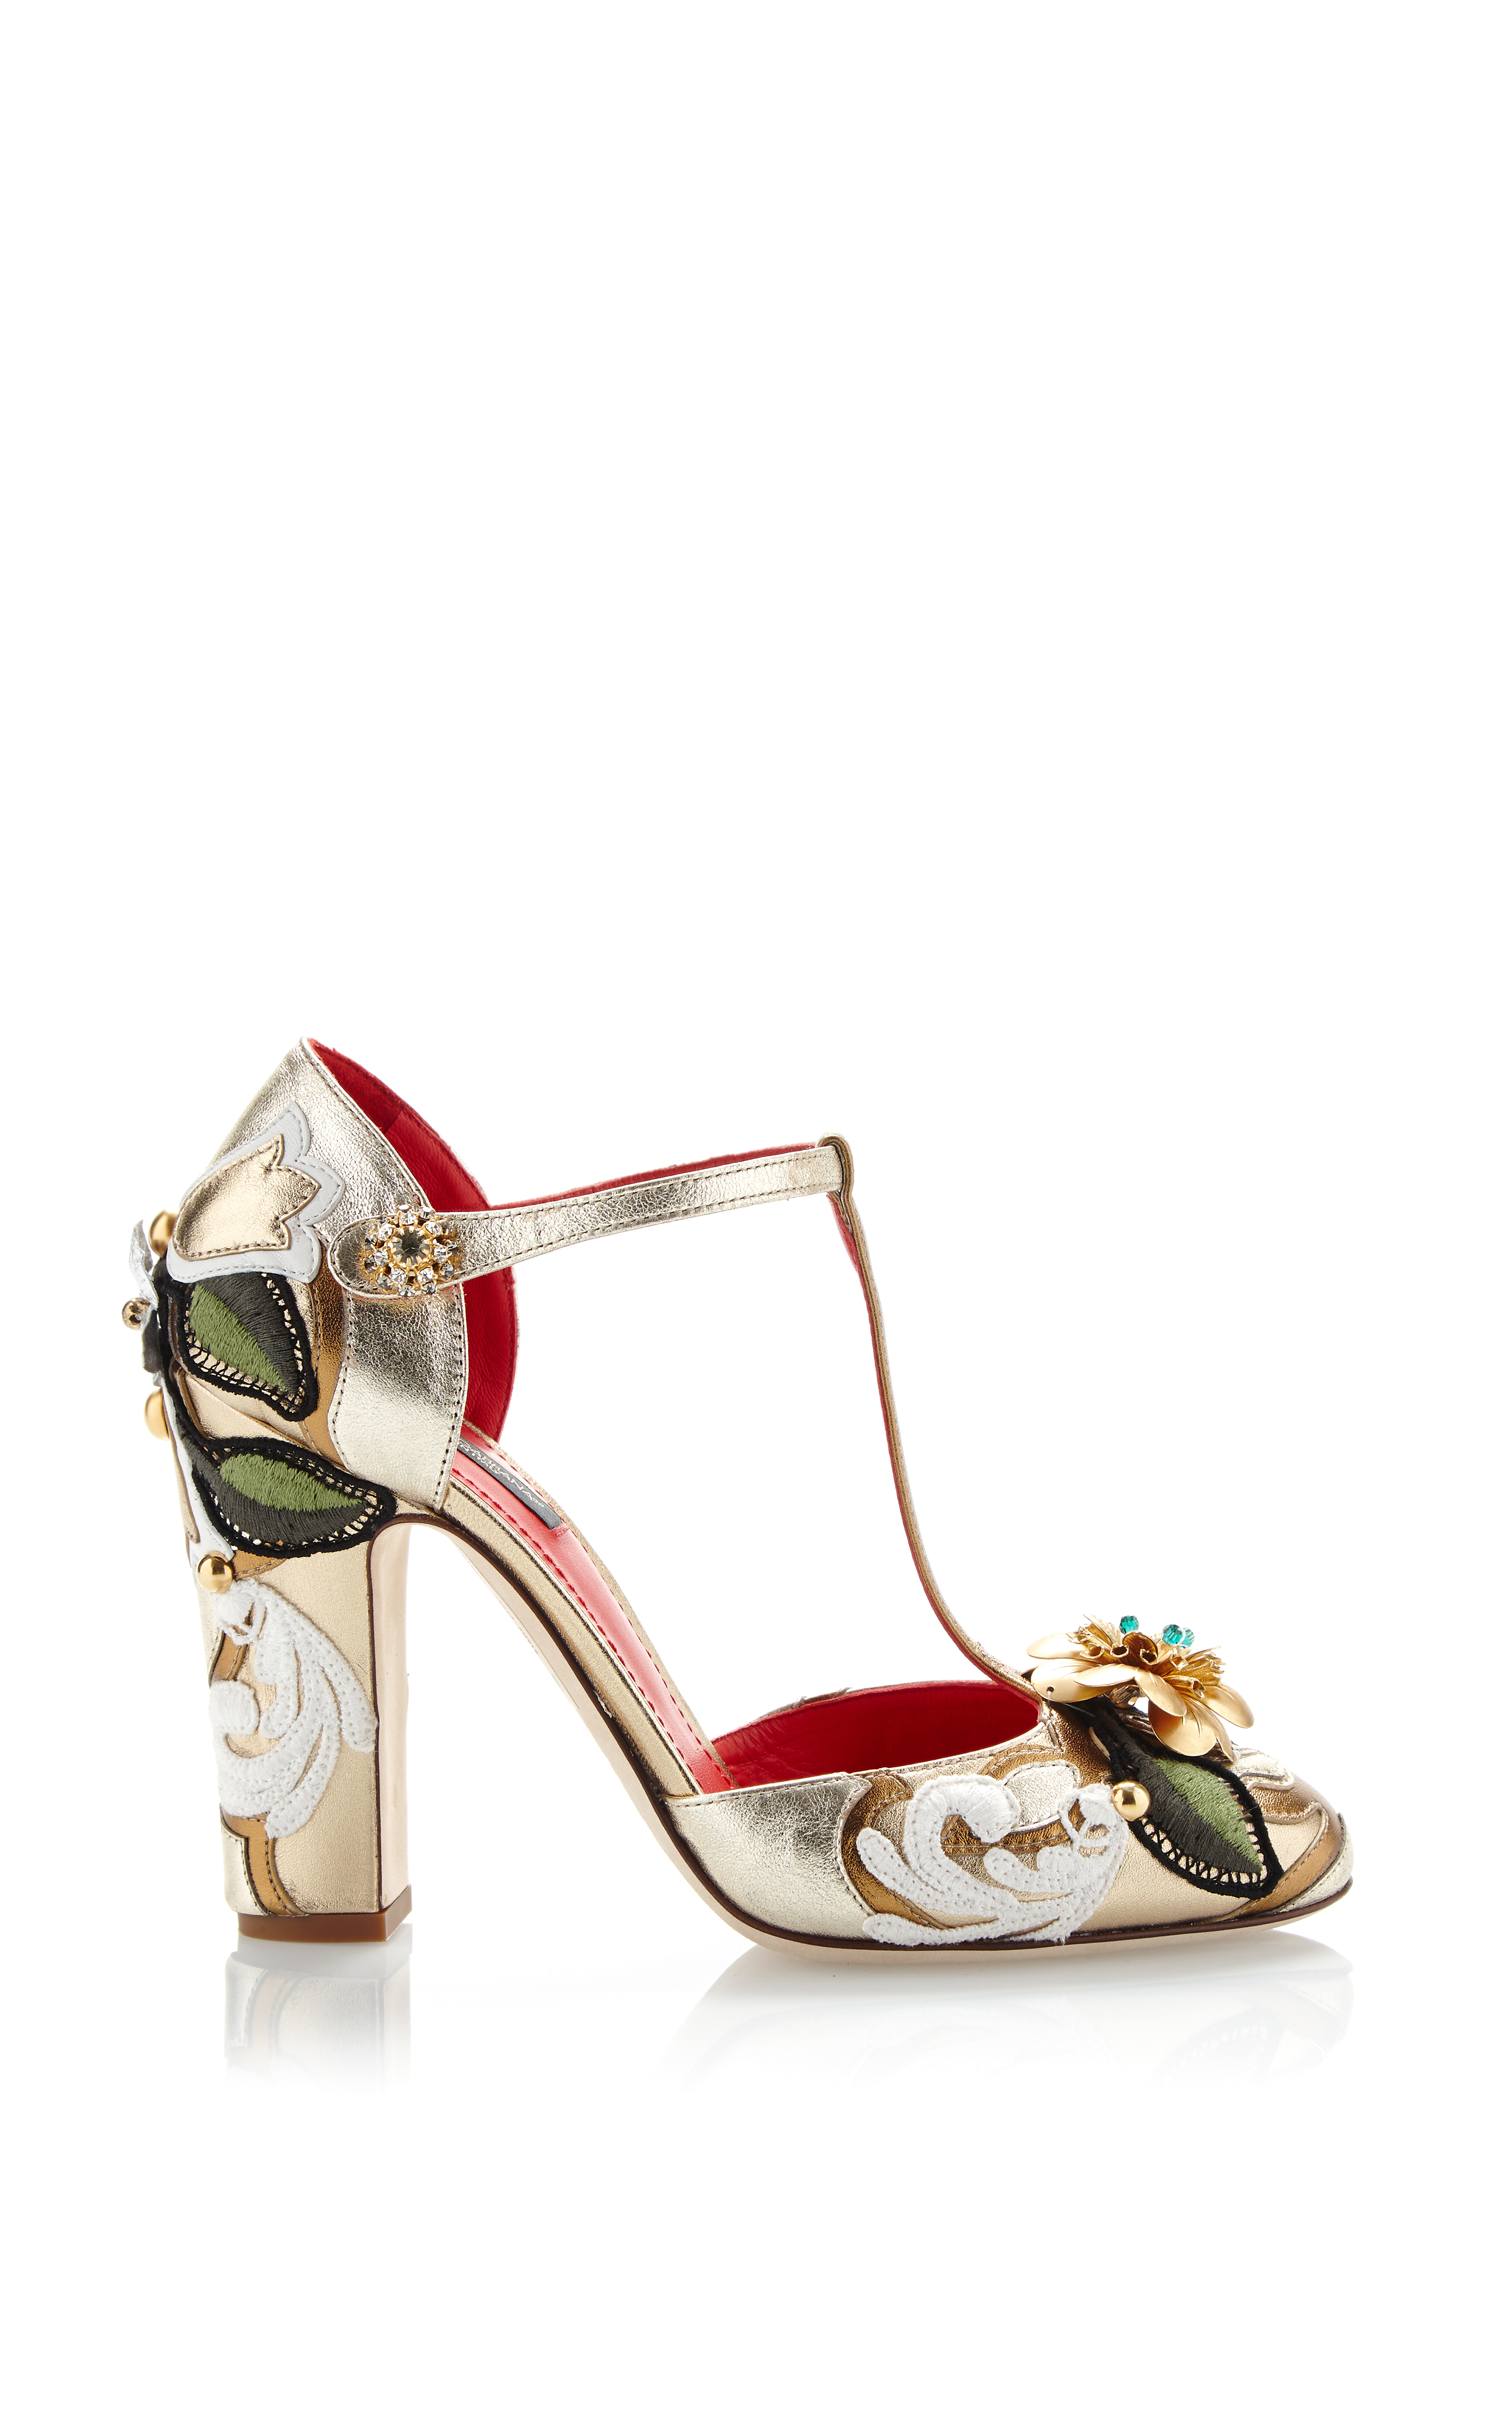 01c6d0a313a124 Lyst - Dolce   Gabbana Metallic Leather T-strap Pump with Embroidery ...